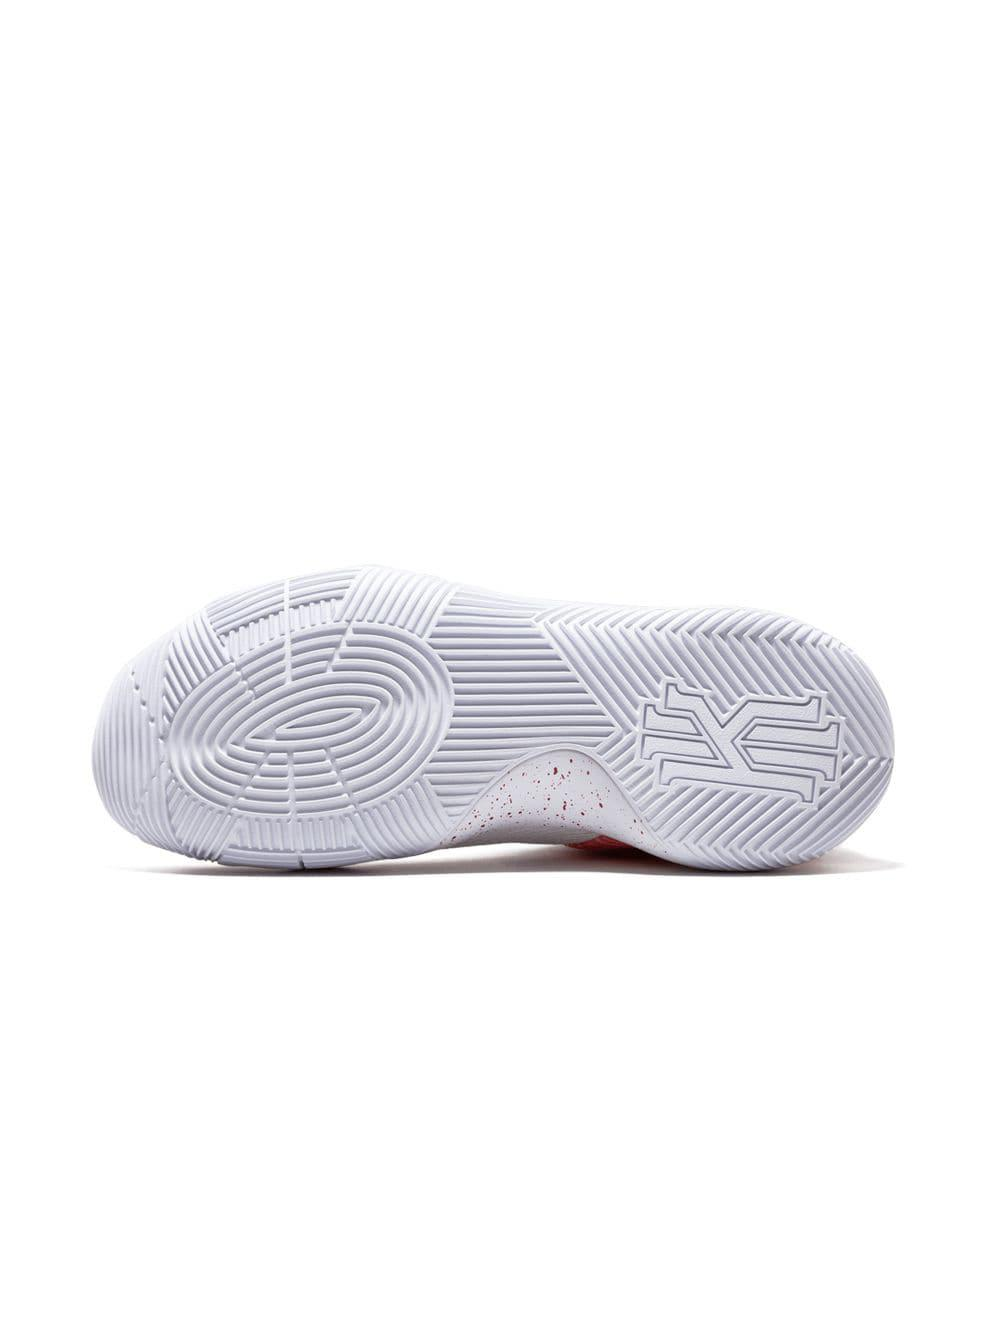 91acc16d9013 Nike Kyrie 2 Id Sneakers in White for Men - Lyst